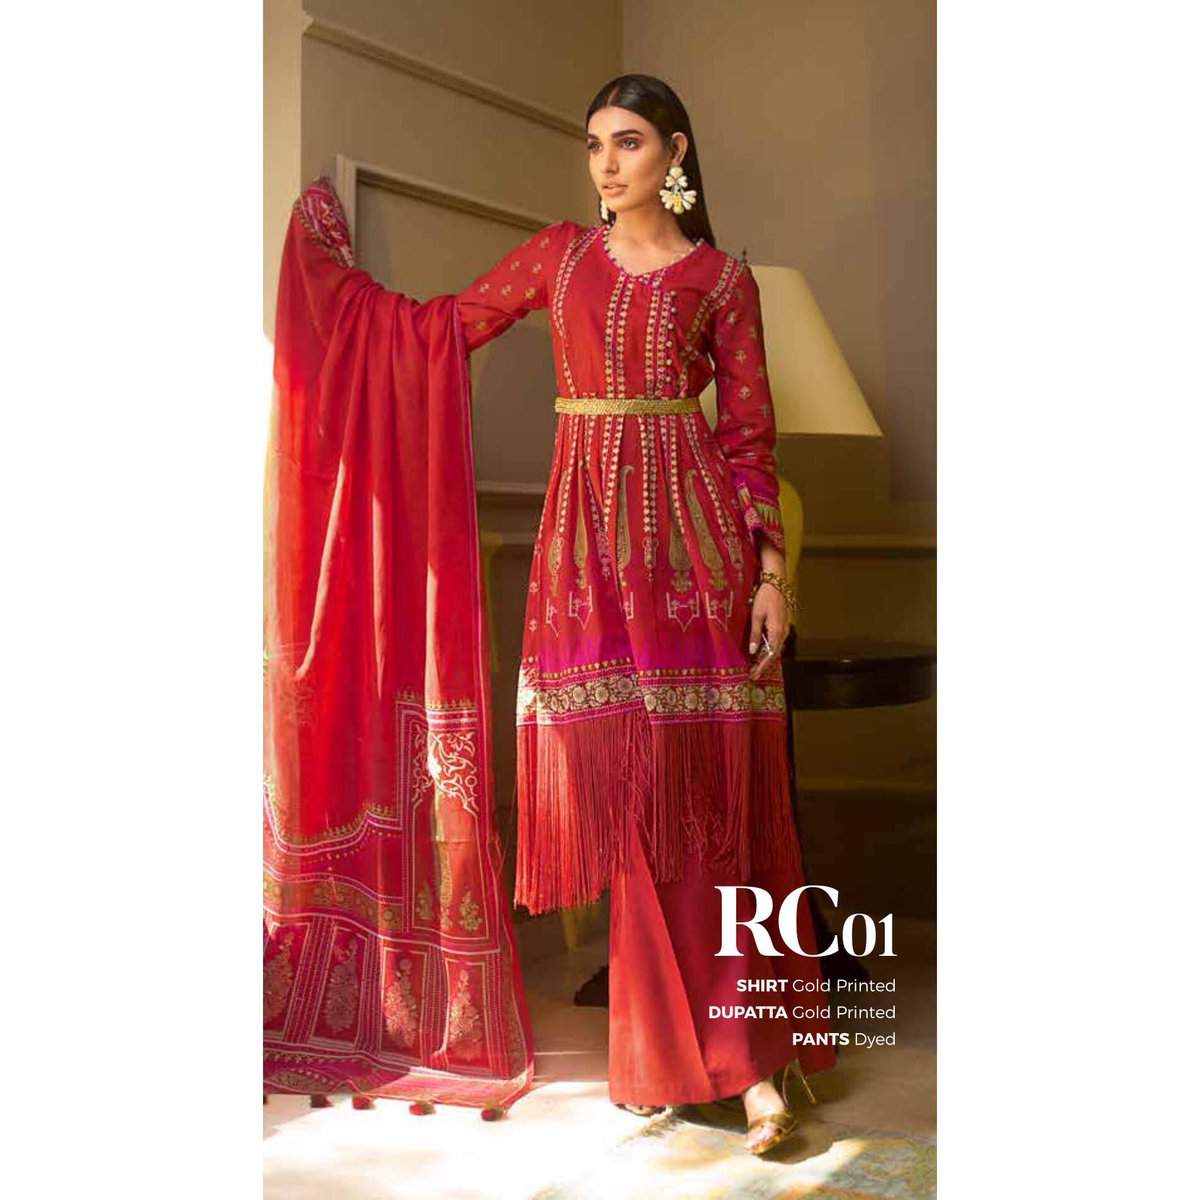 f4967fe0e5 The Rose Collection By GulAhmed NOW AVAILABLE AT SULTANIA FASHIONS ORDER  TODAY STAY TUNED FOR MORE! #sultaniafashions #birmingham #fashion #asian ...